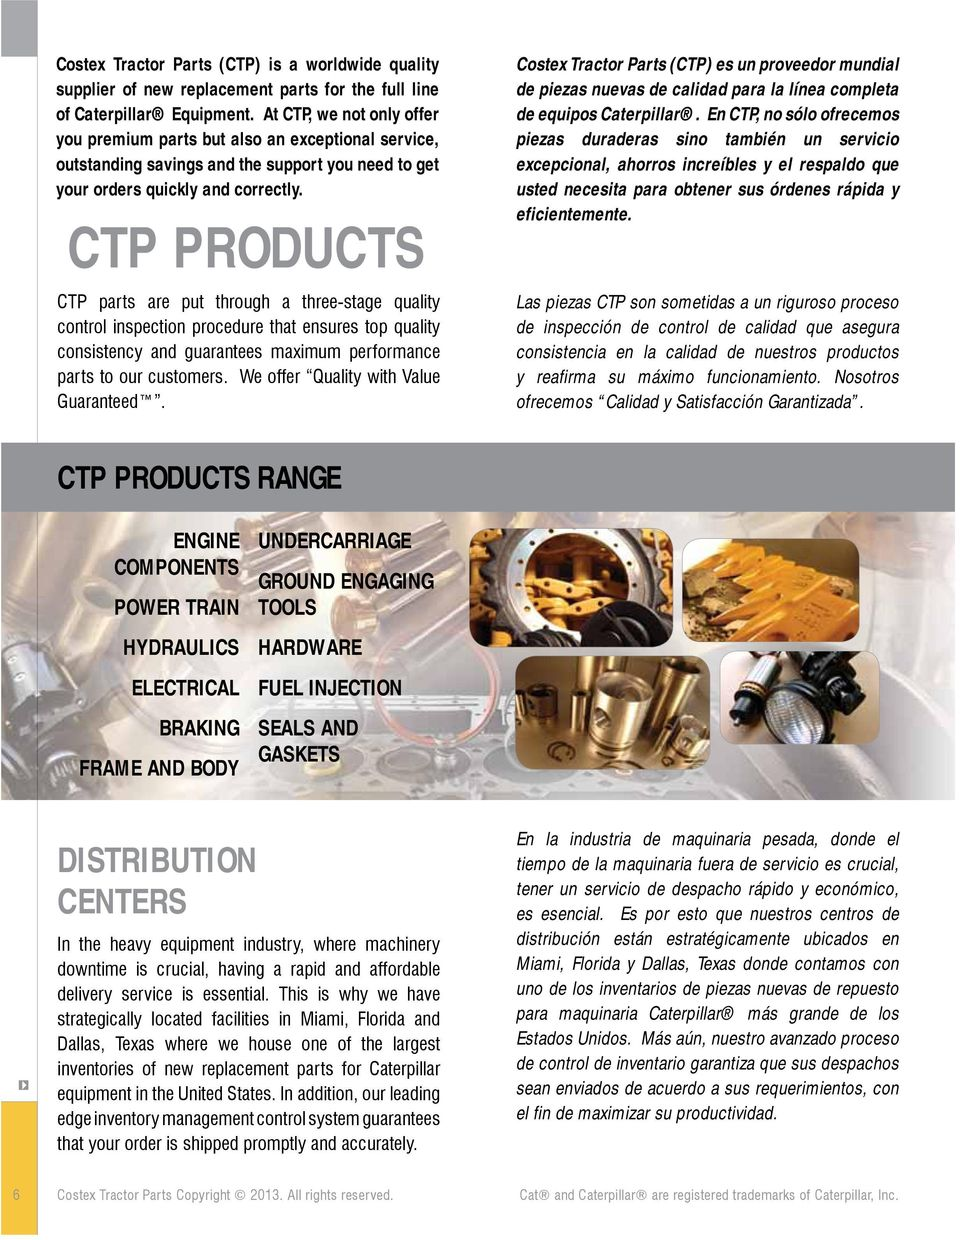 Quality Replacement Parts For Your Caterpillar Equipment Pdf Panel Fuse Box And Wiring Harness Motor Grader 12f Ctp Products Are Put Through A Three Stage Control Inspection Procedure That